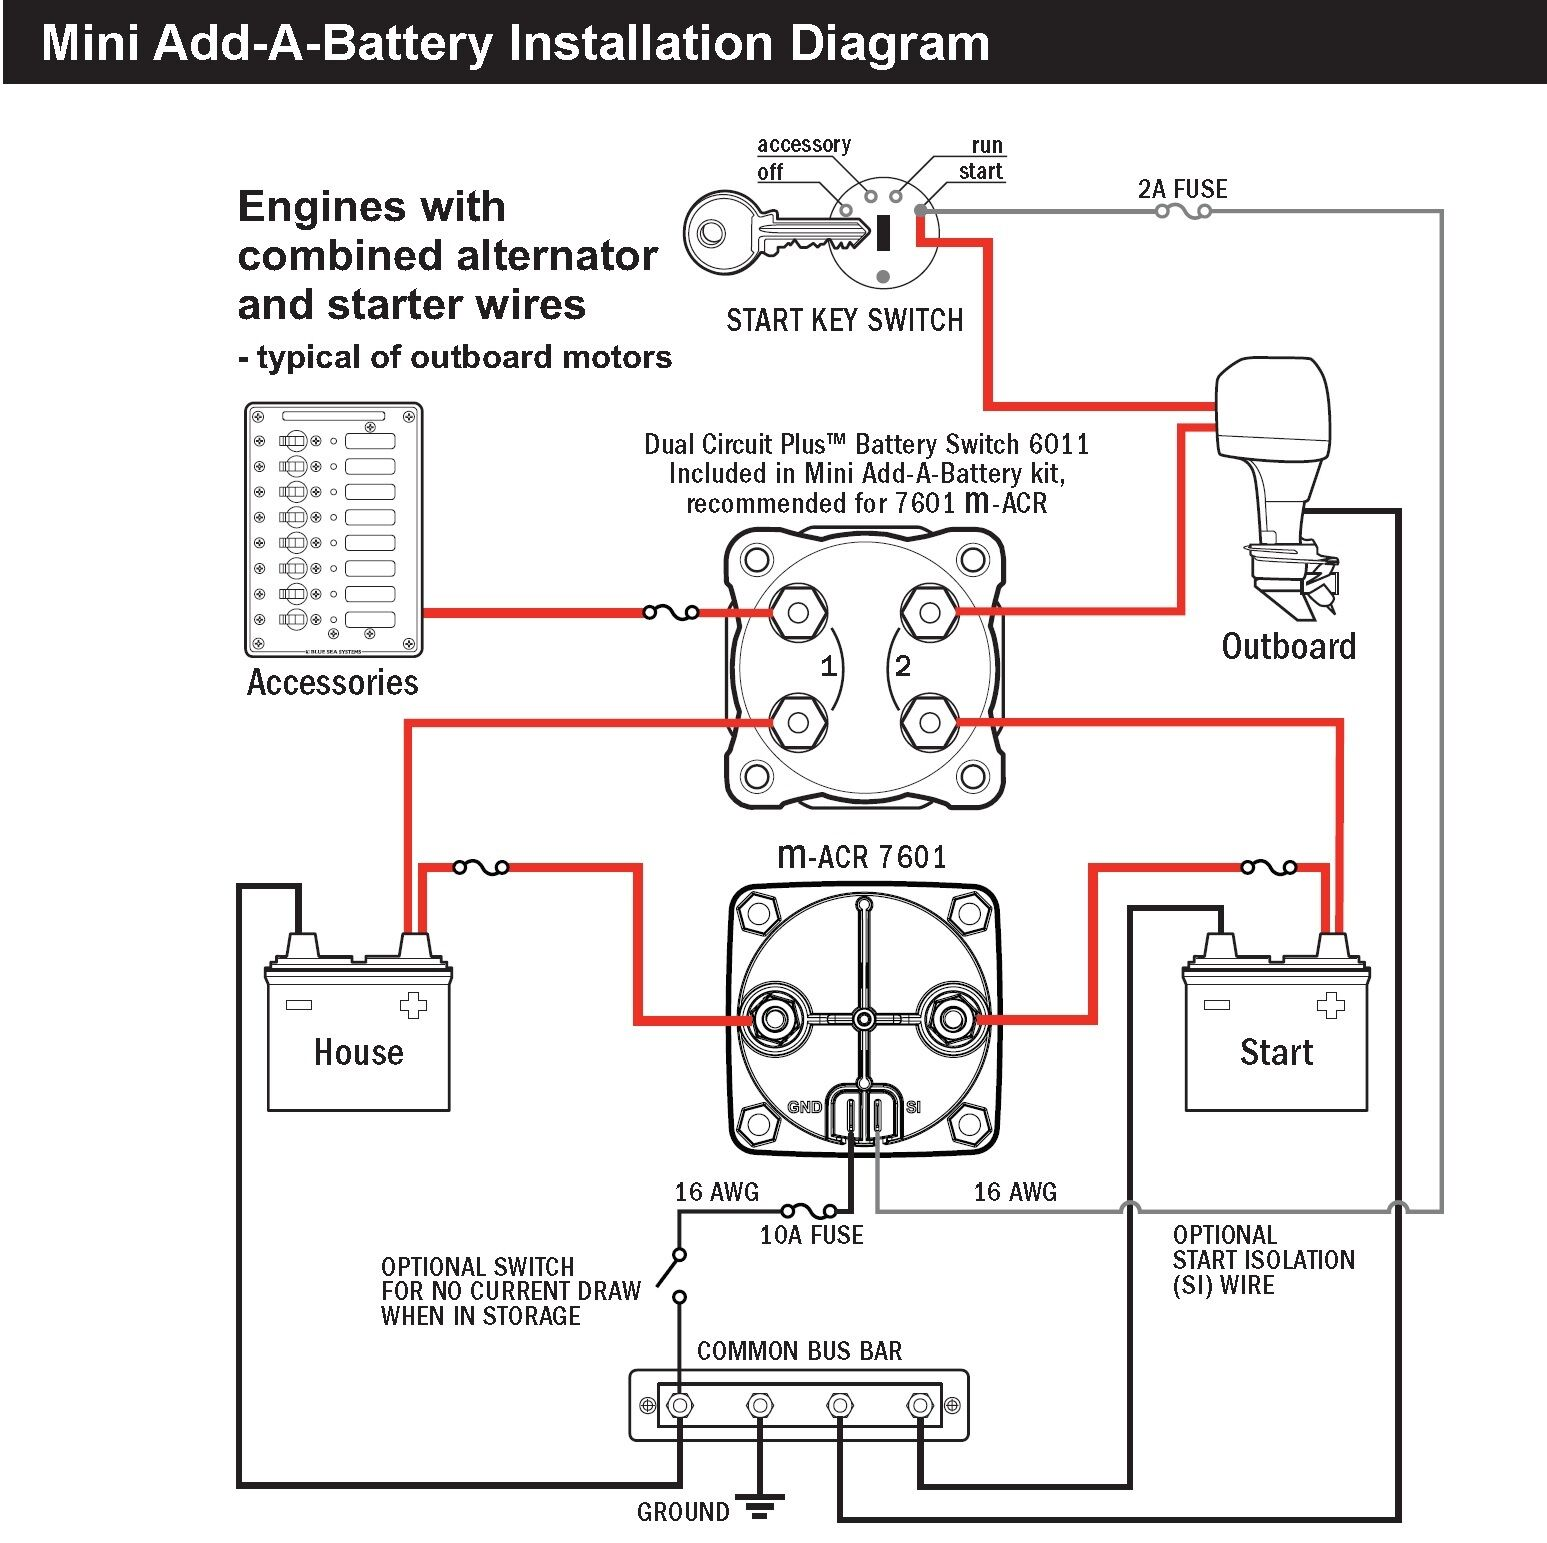 $(KGrHqJHJEkFE2s+(4!BRe pREItg~~60_57 which battery switch is best for a 21 with two batteries plus main scotty downrigger wiring diagram at crackthecode.co